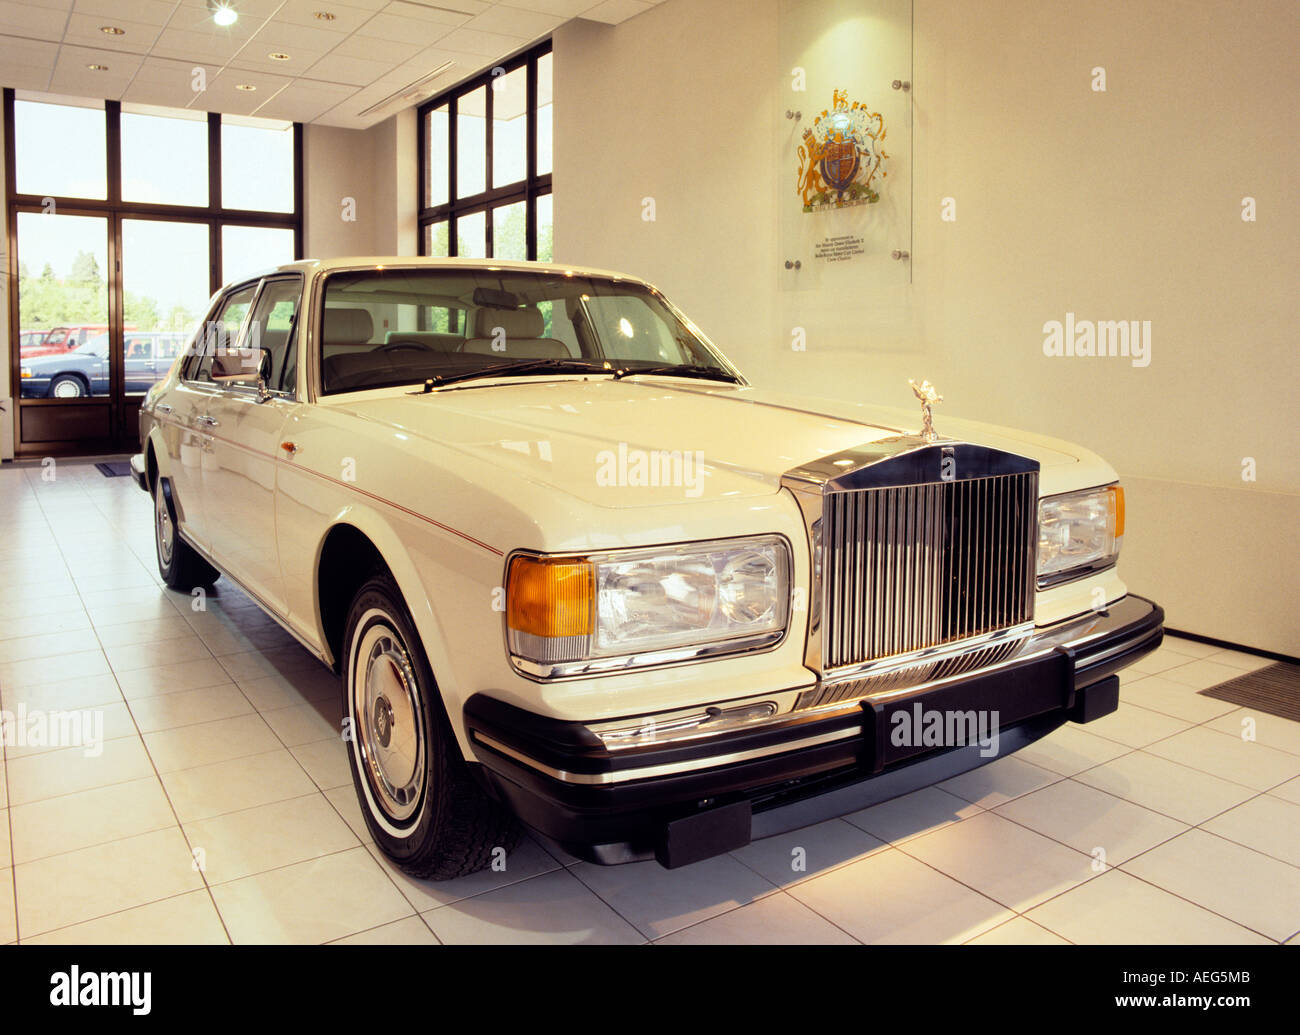 Cheshire Crewe Car making history Rolls Royce factory foyer 1990s car - Stock Image